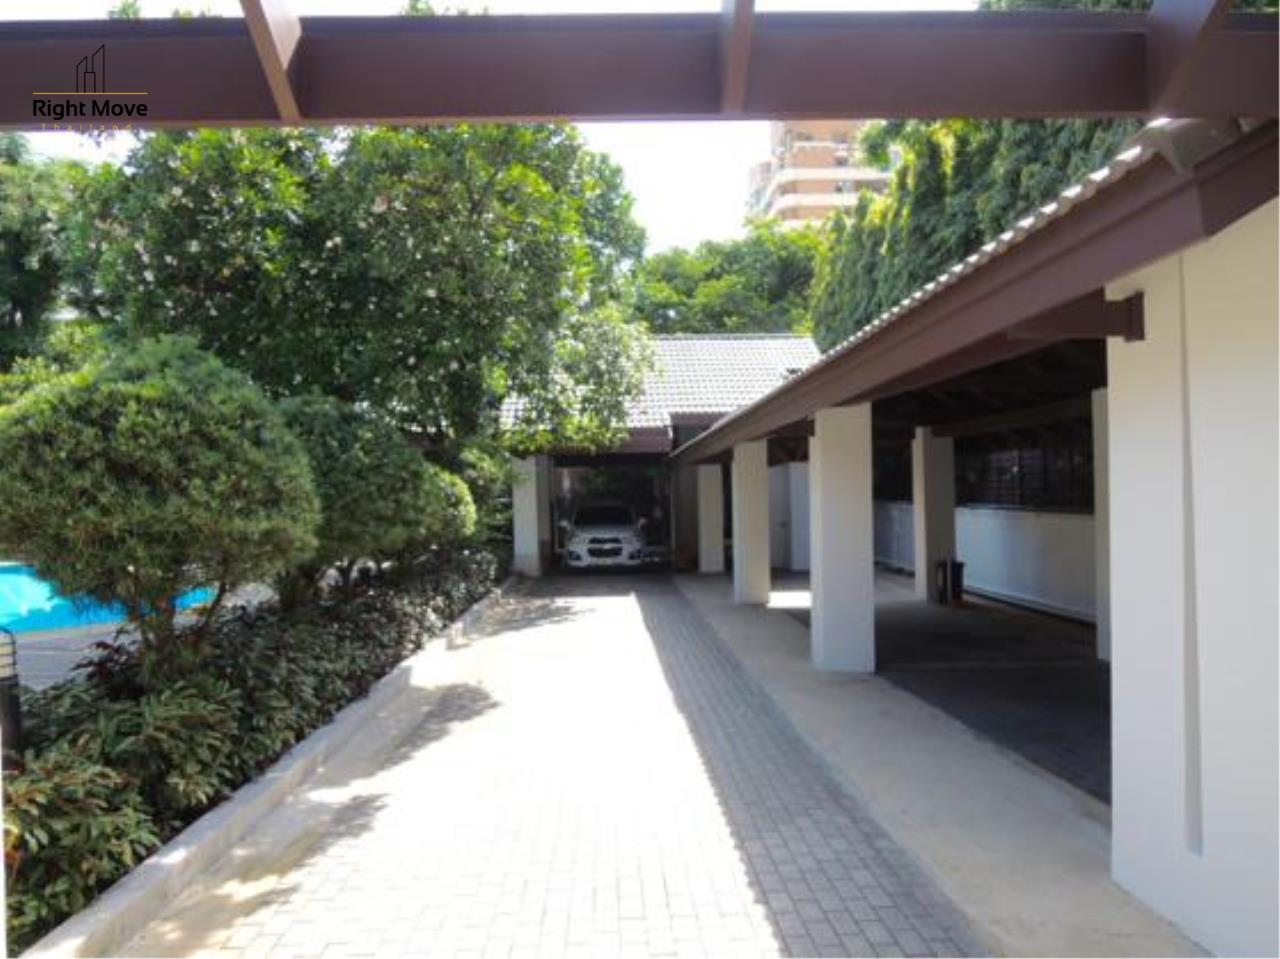 Right Move Thailand Agency's HR663 House With Private Pool For Rent 350,000 THB 4 Bedrooms 1000 Sqm 6